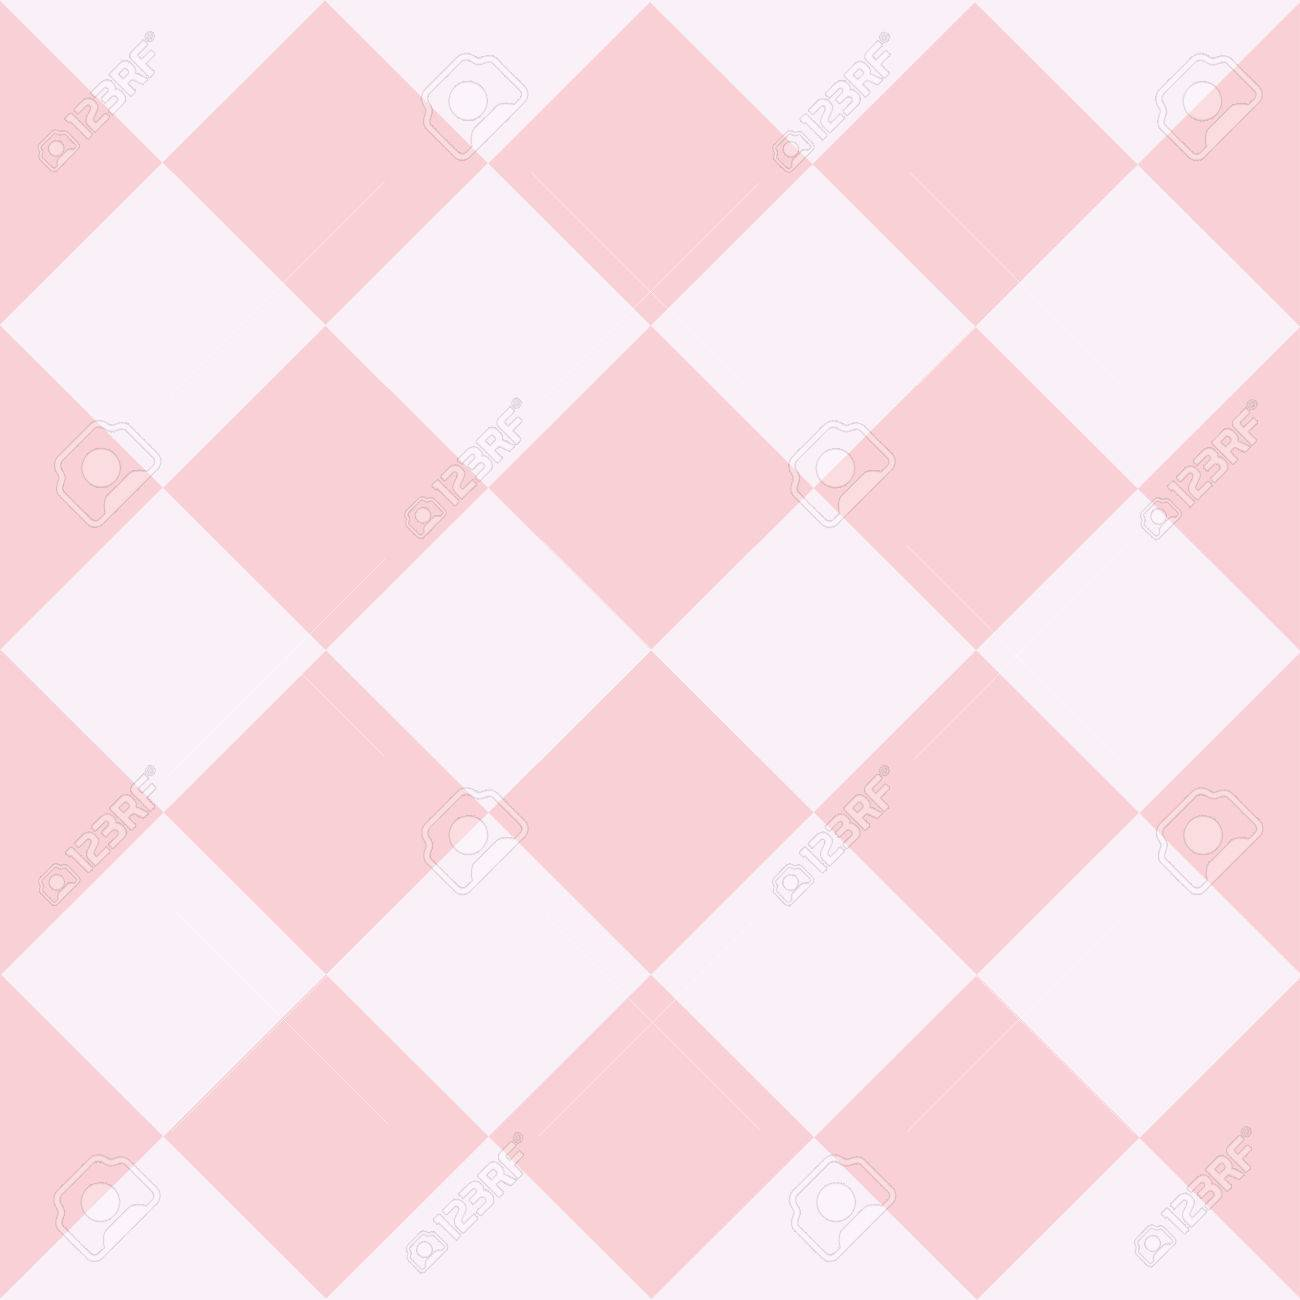 Pink White Chess Board Diamond Background Vector Illustration